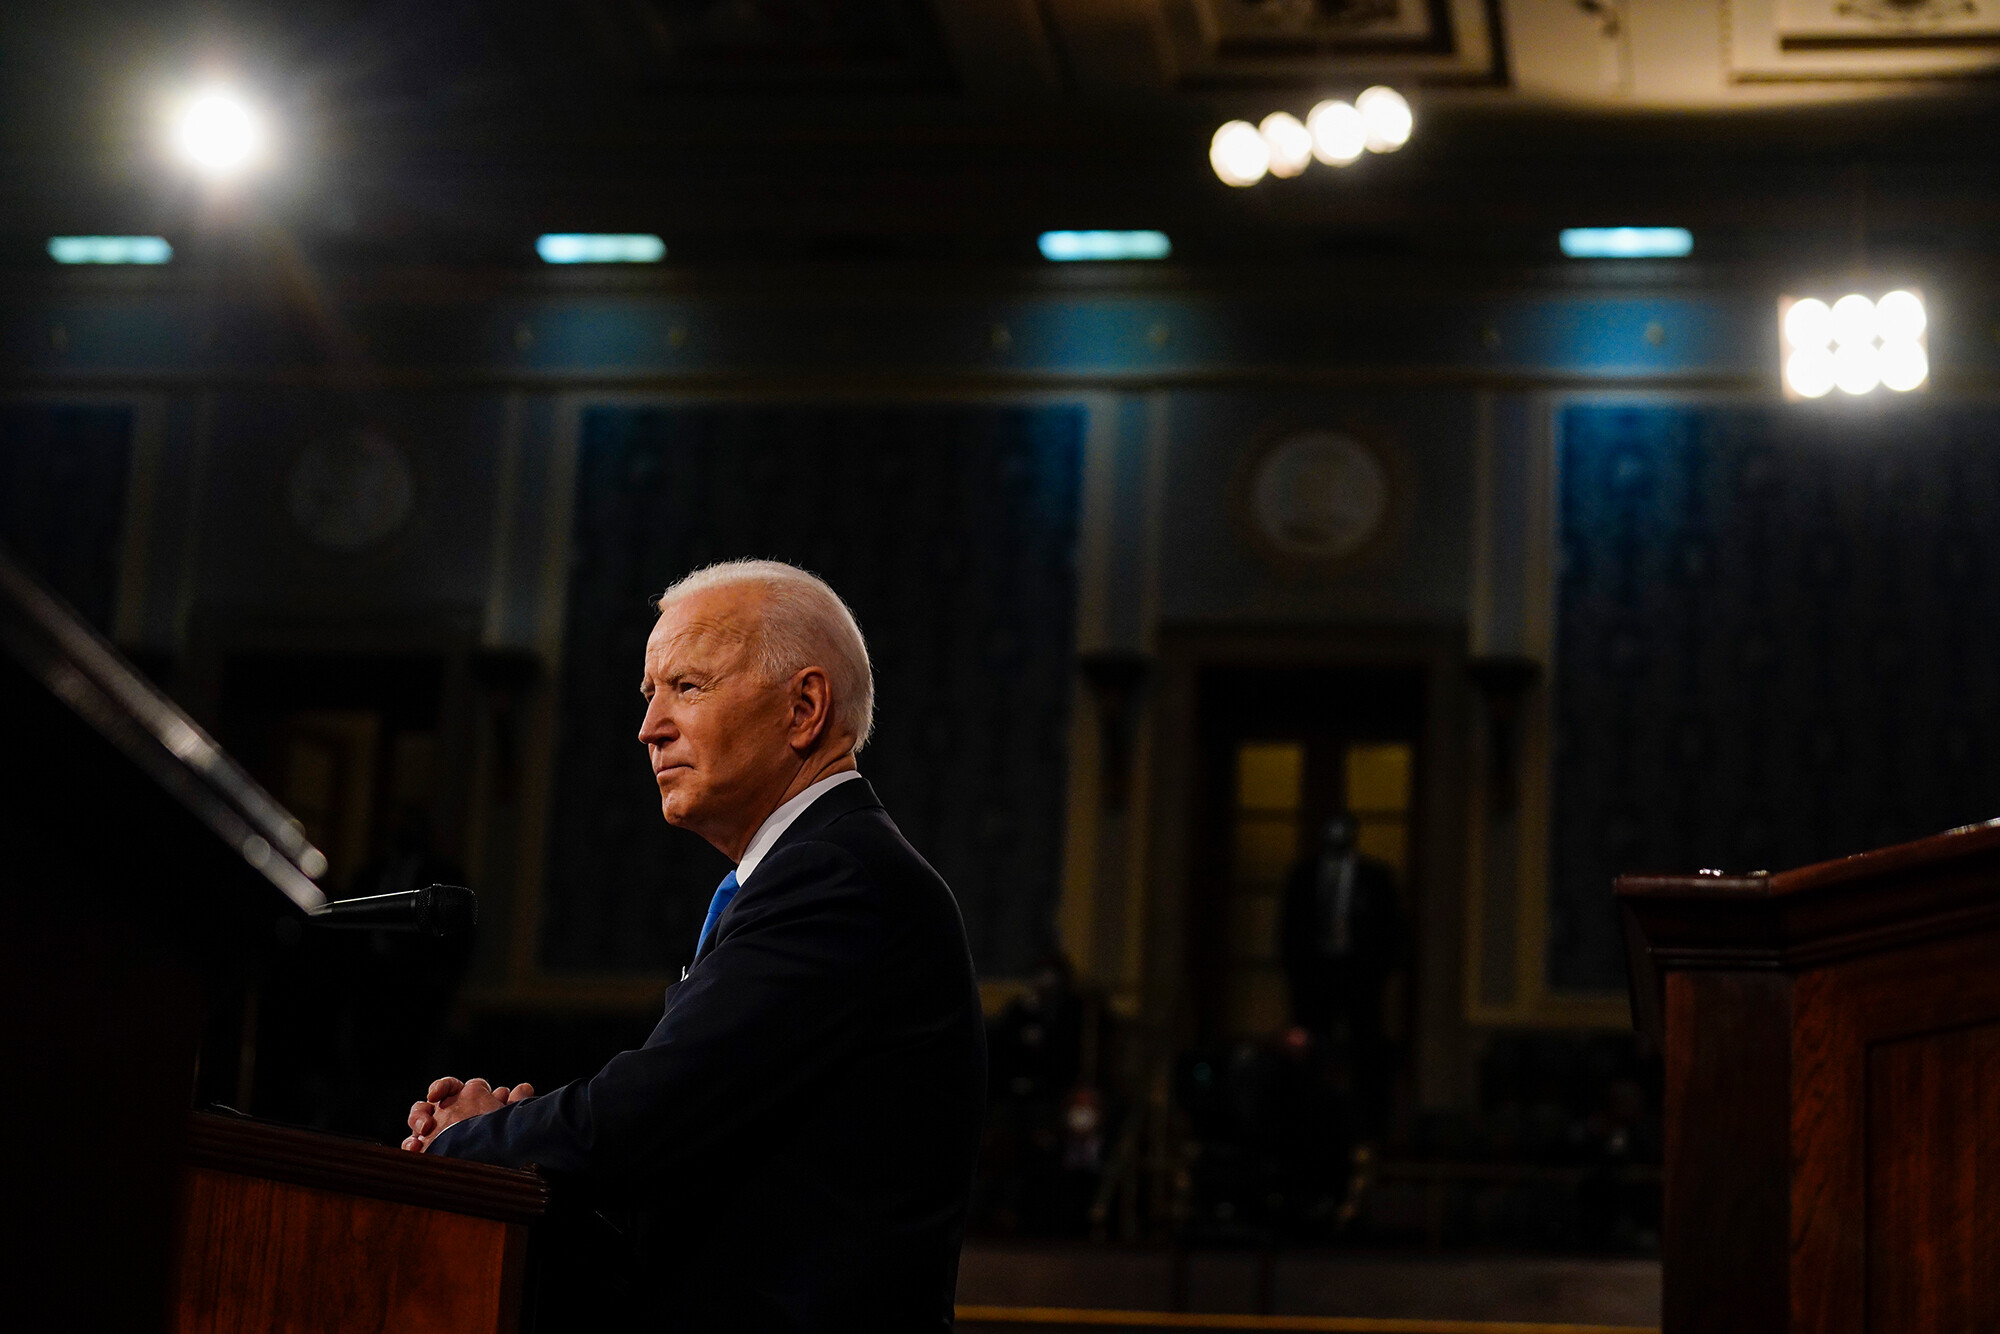 Biden vows 'we're going to get this done' as Democrats attempt to overcome divisions to enact agenda